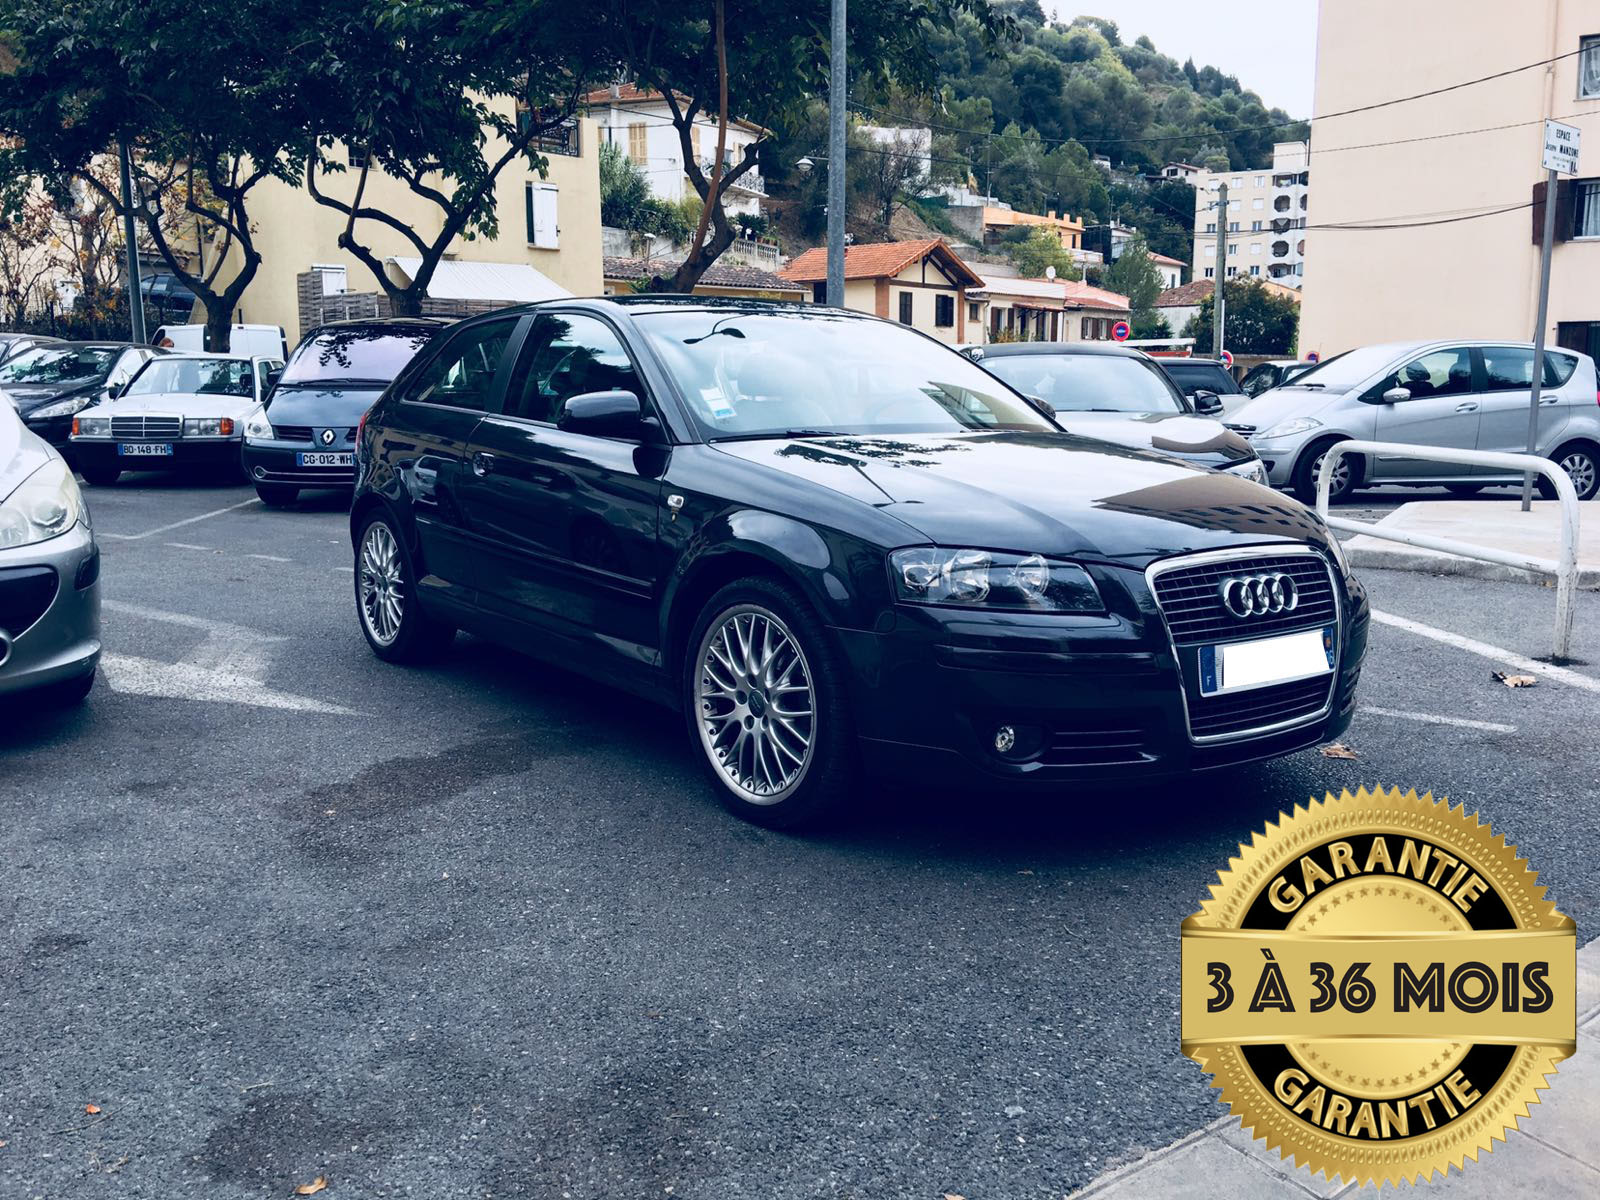 voiture audi a3 2 0 tdi ambition s tronic a occasion diesel 2008 68000 km 11990 nice. Black Bedroom Furniture Sets. Home Design Ideas